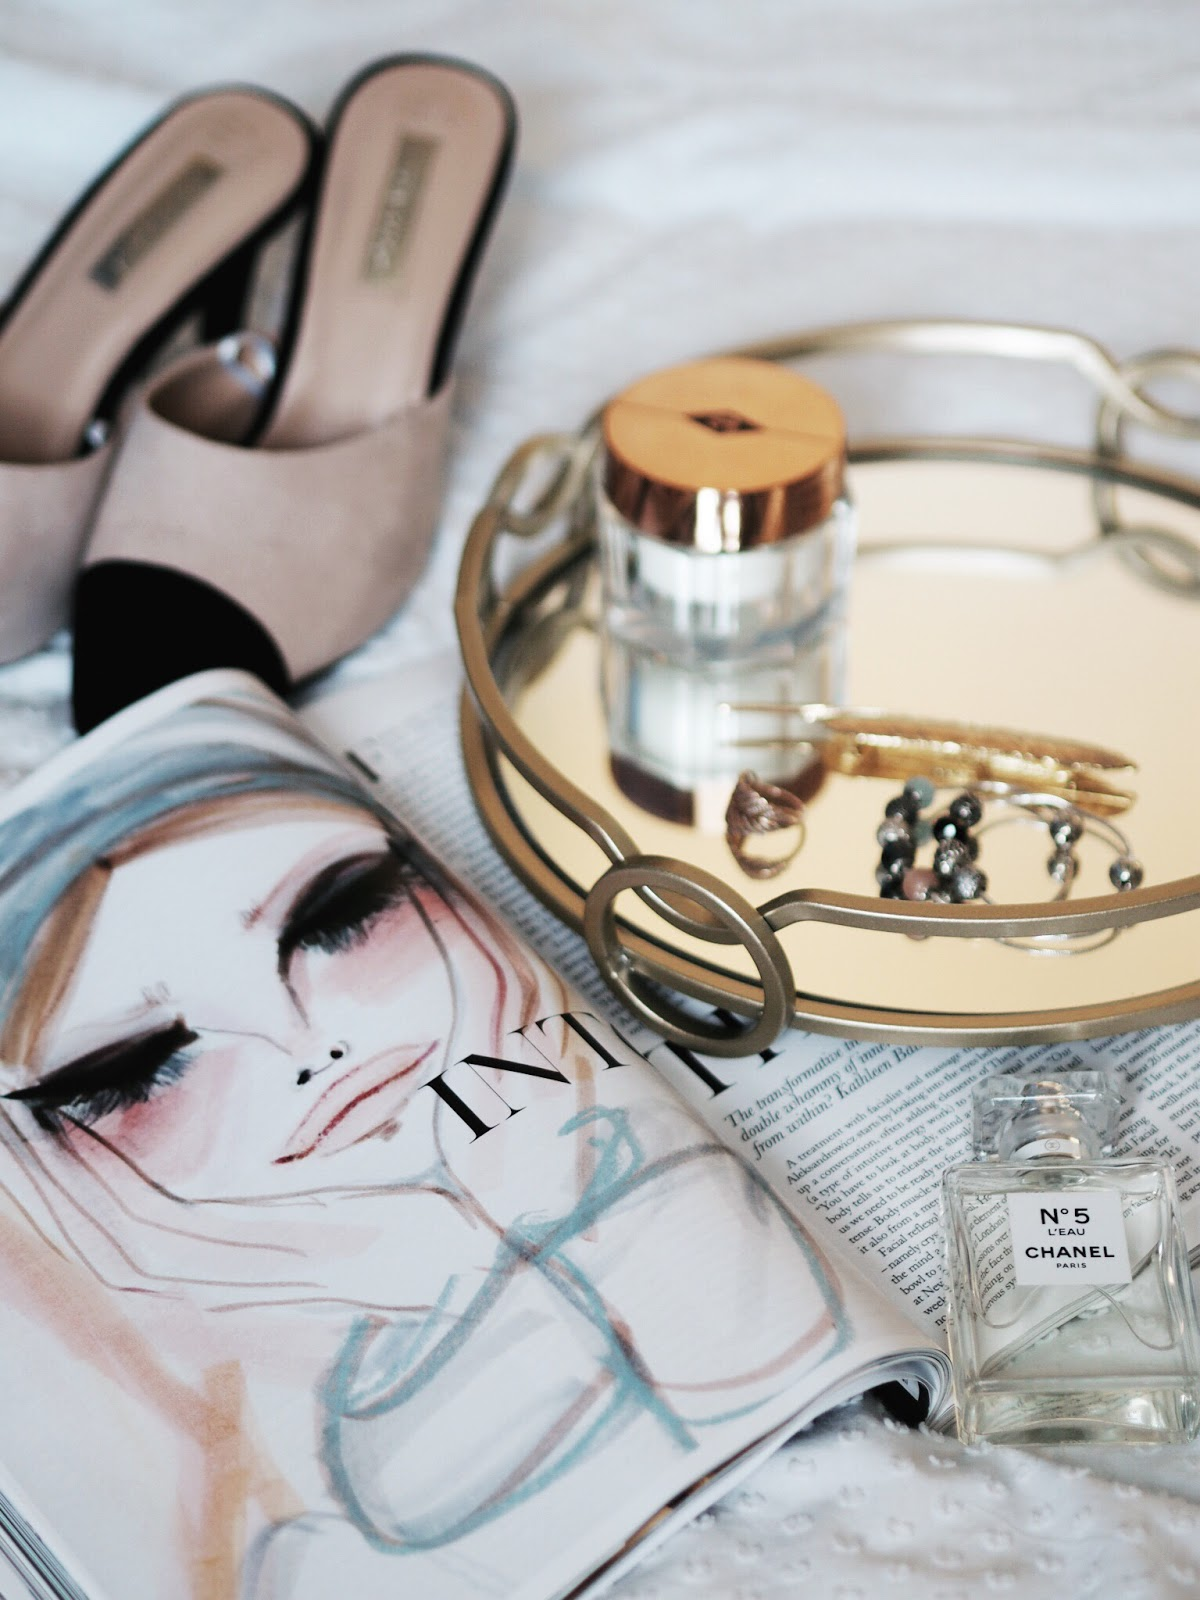 Fashion Illustration in Pastel Colours, Primark Chanel Dupe shoes, Mirrored Tray with accessories flat lay